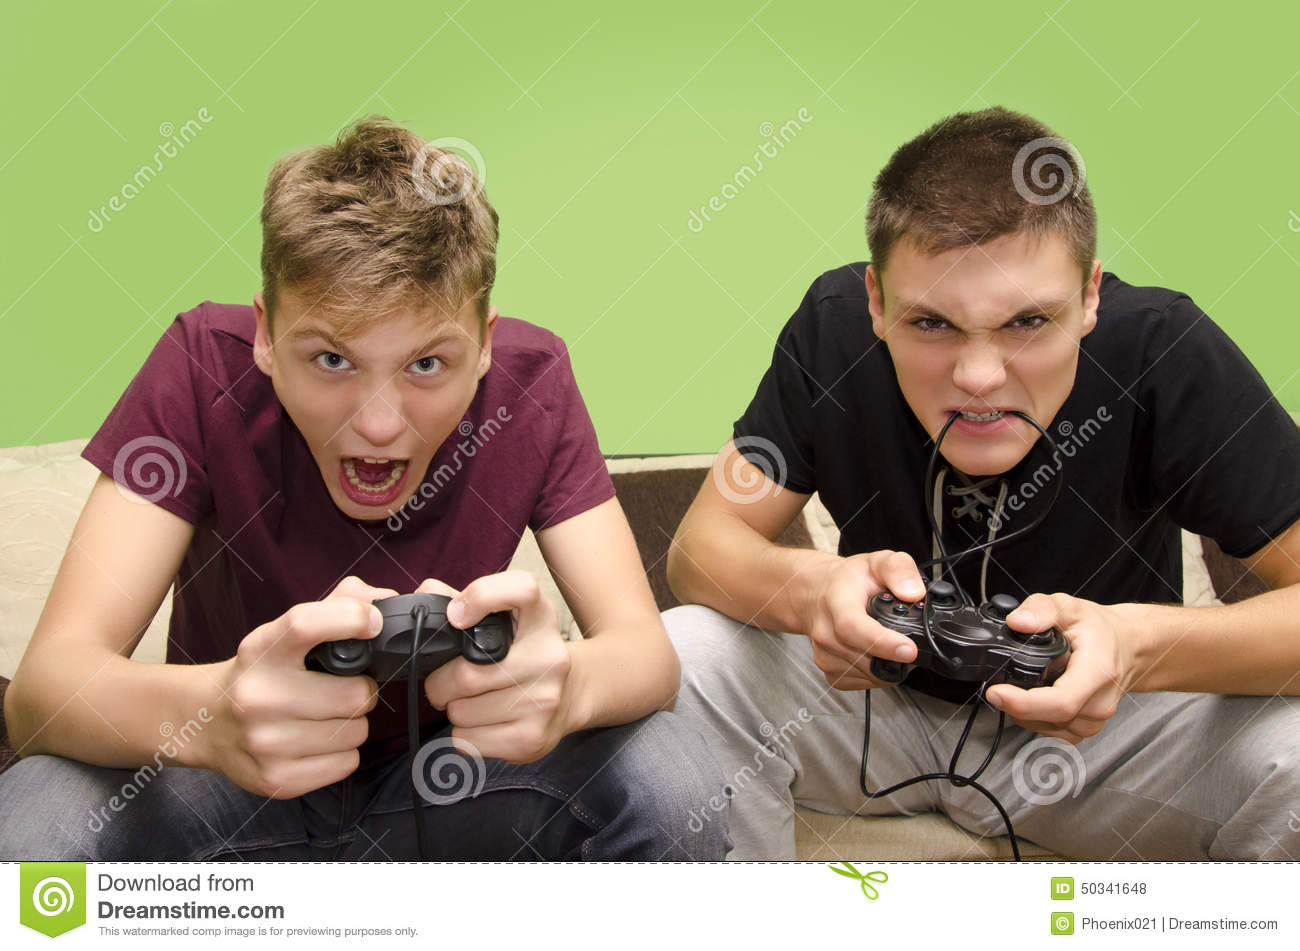 brothers-playing-video-games-funny-selective-focus-younger-brother-two-teenager-very-intense-yelling-biting-joystick-cable-50341648.jpg